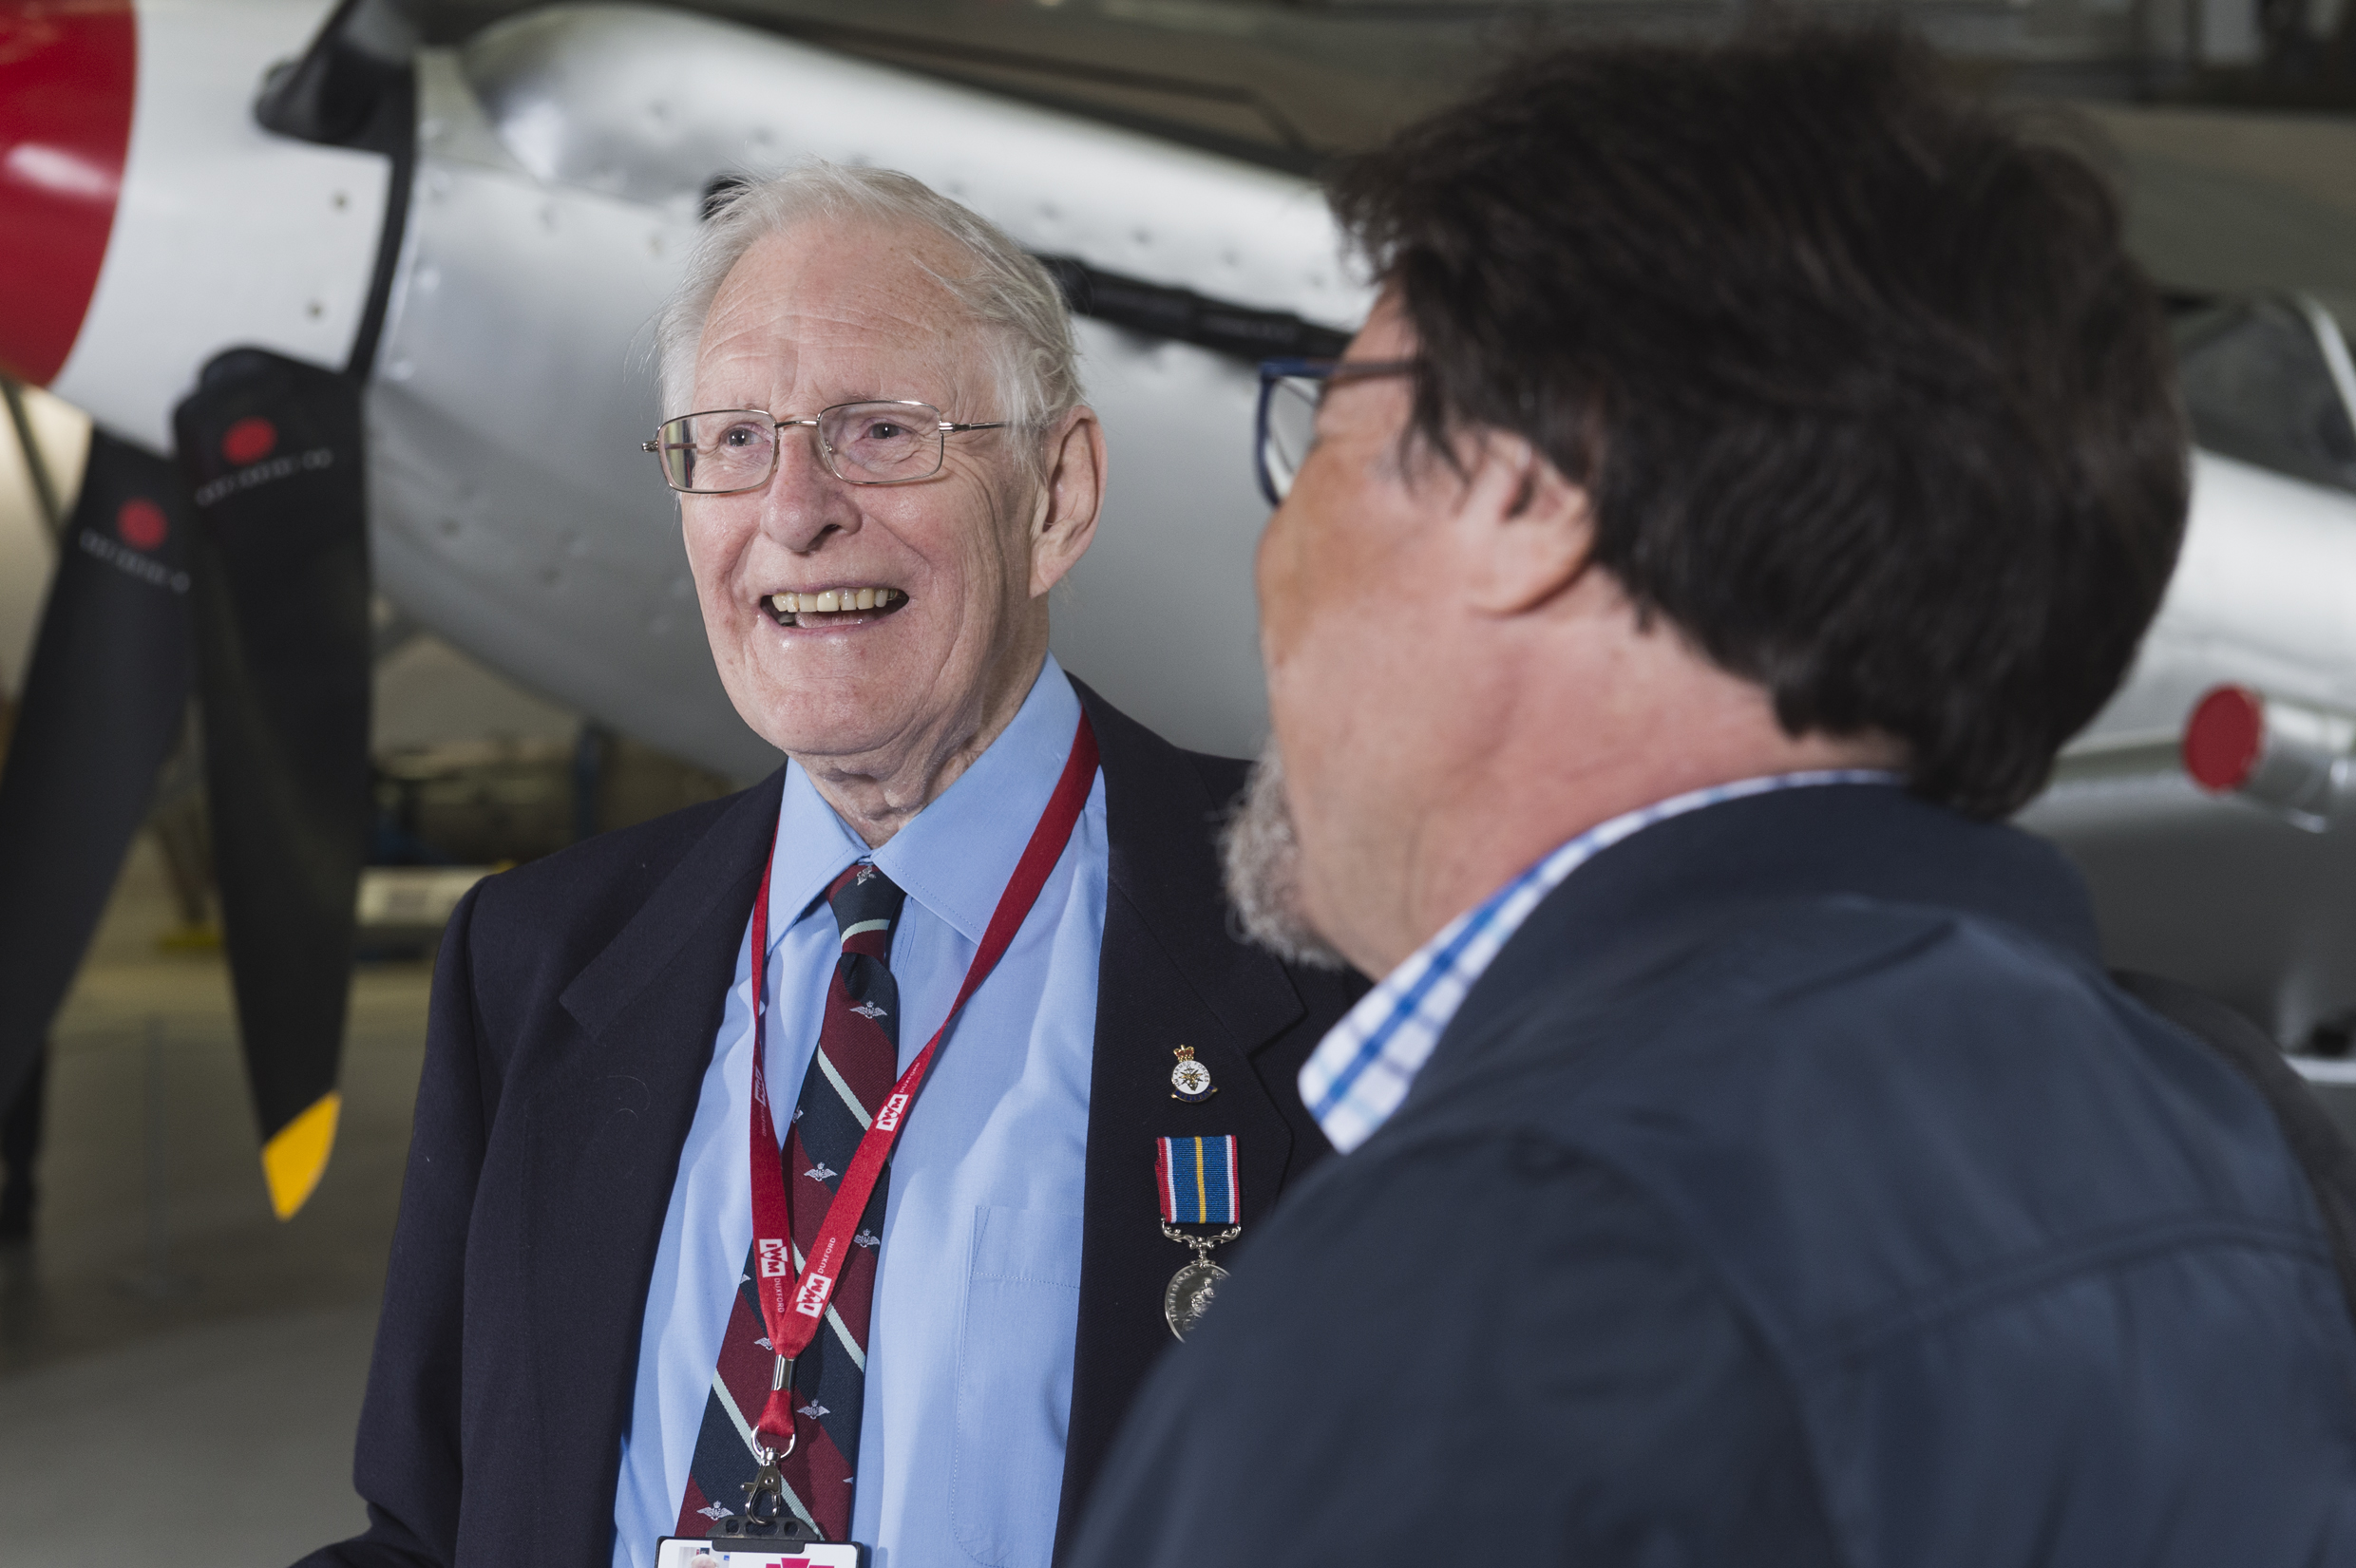 John, a veteran participating in IWM's We Were There programme